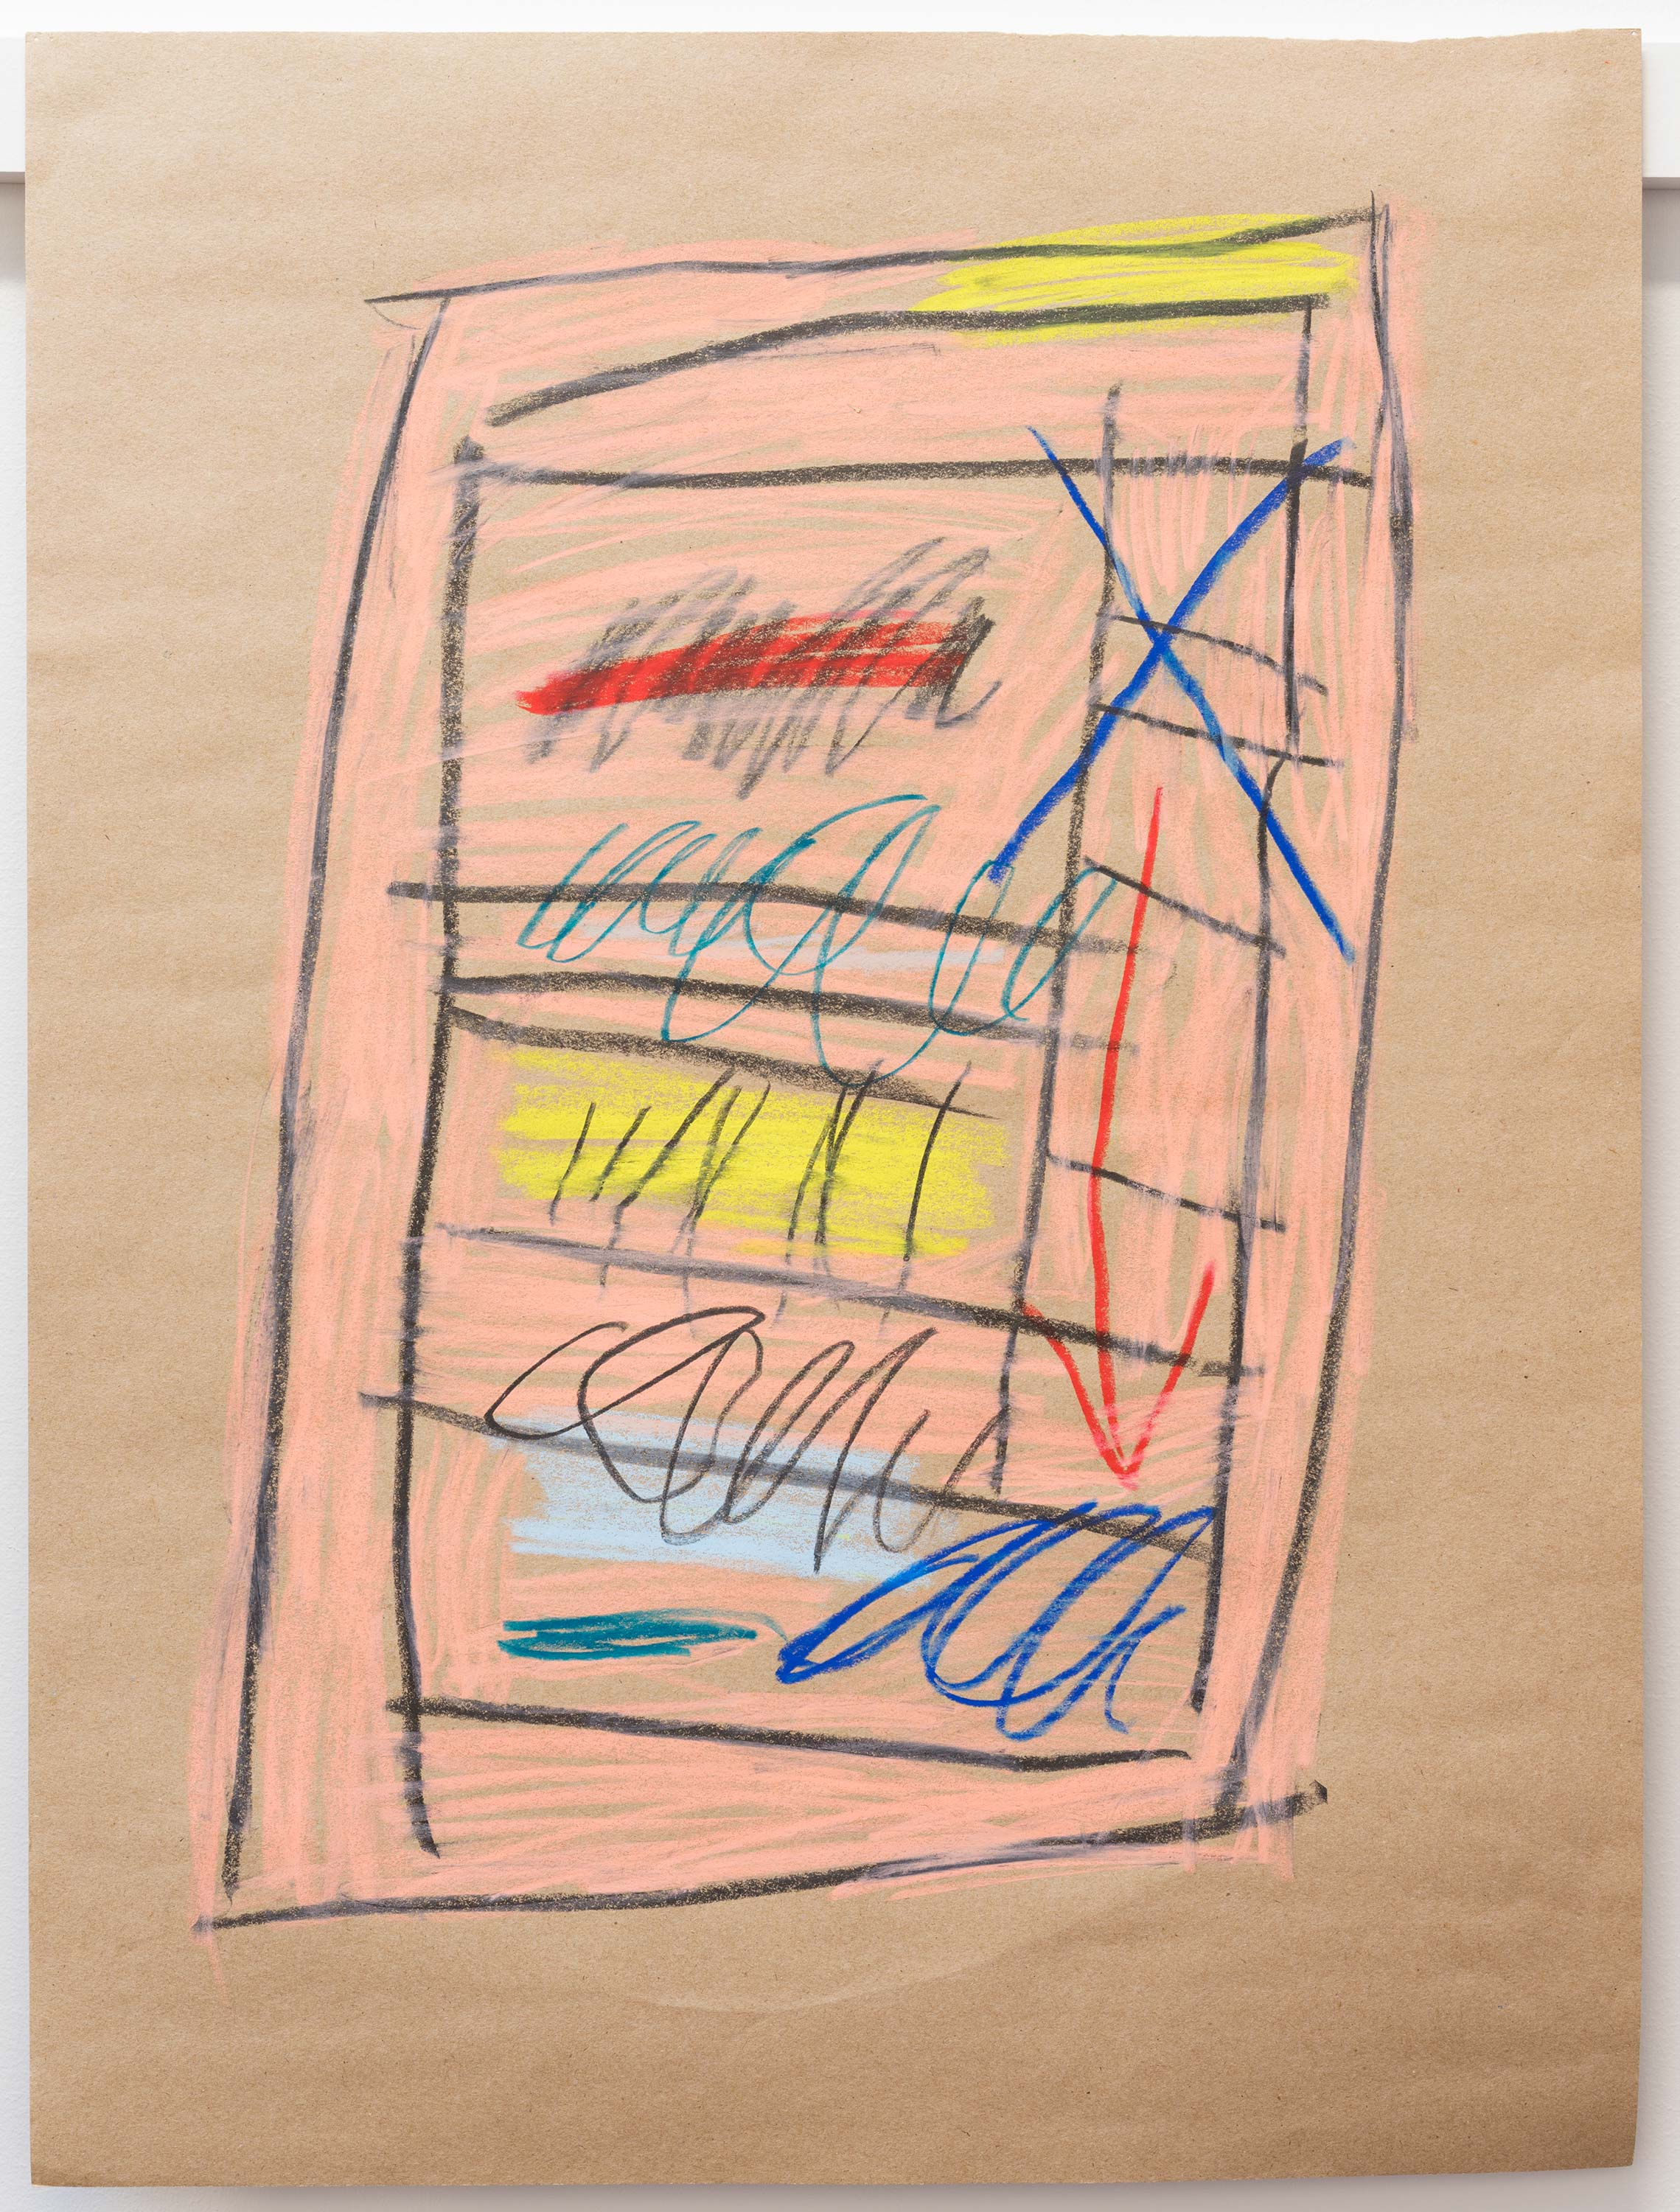 Al Freeman<br>Leaf 15<br>2015<br>Graphite and oil pastel on paper<br>18 x 24 inches (46 x 61 cm)